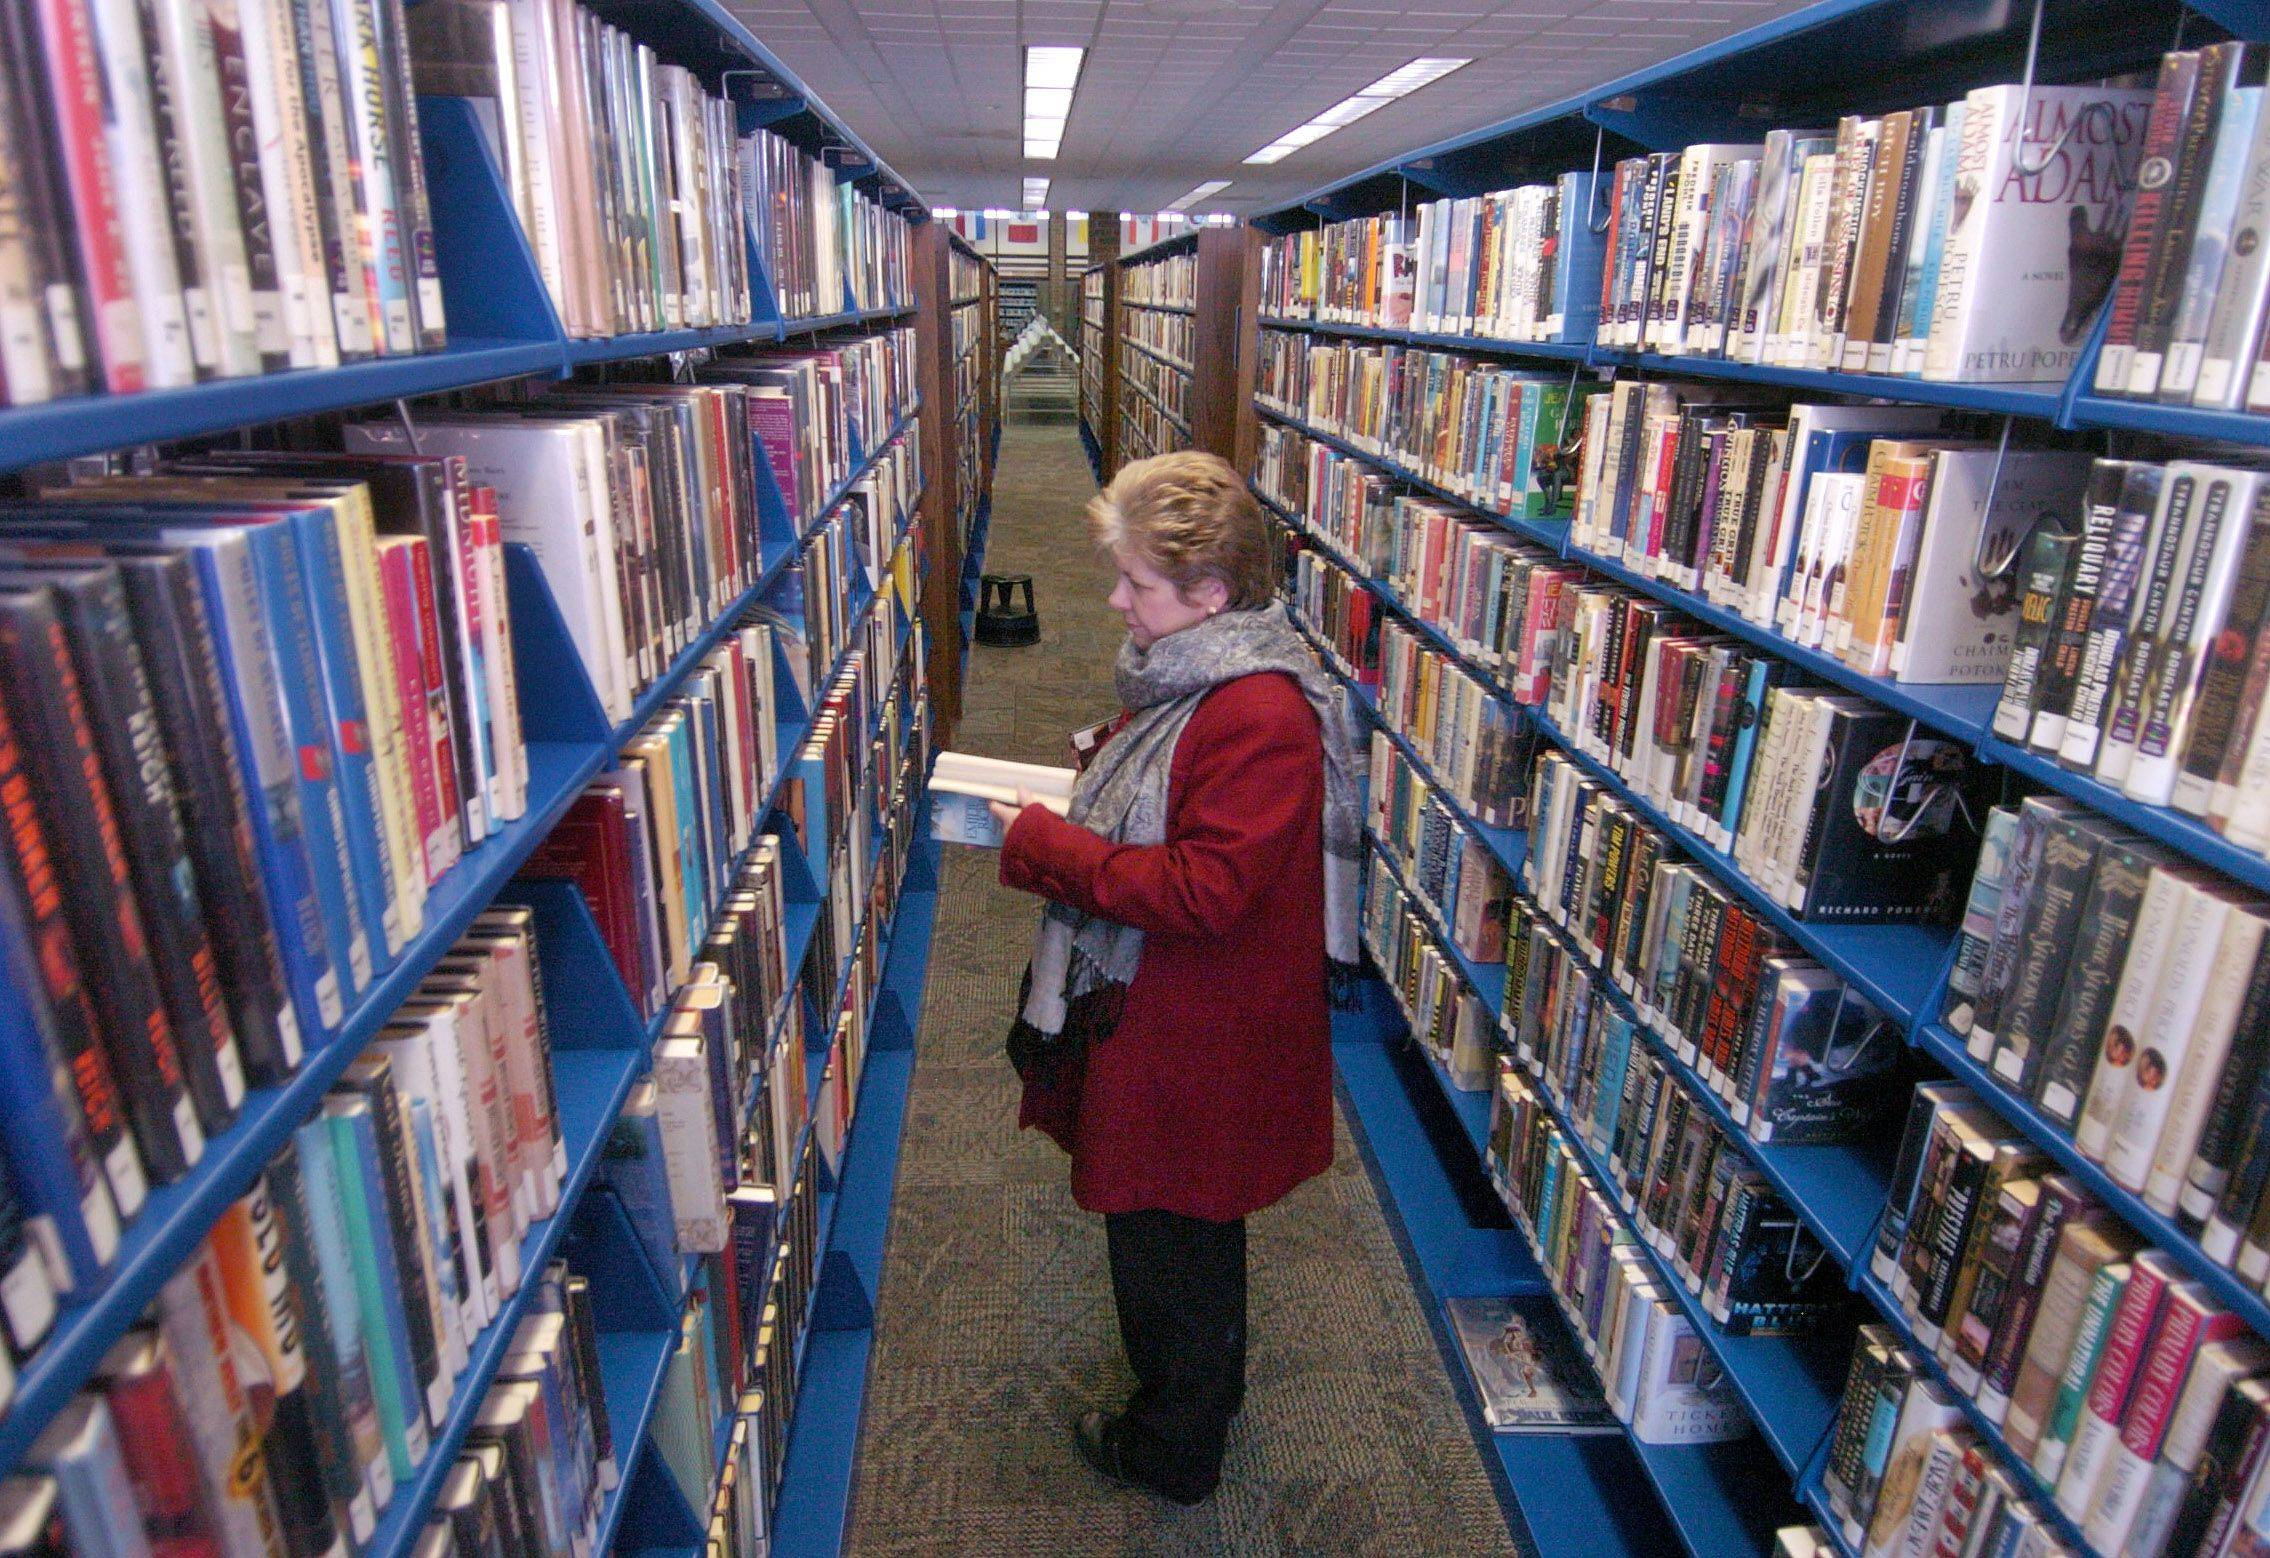 Lynn Thurman of Elk Grove Village picks out some fiction in the Elk Grove Village Public Library. As of May 1, Elk Grove residents who live west of Rohlwing Road will lose their Elk Grove Village library cards.